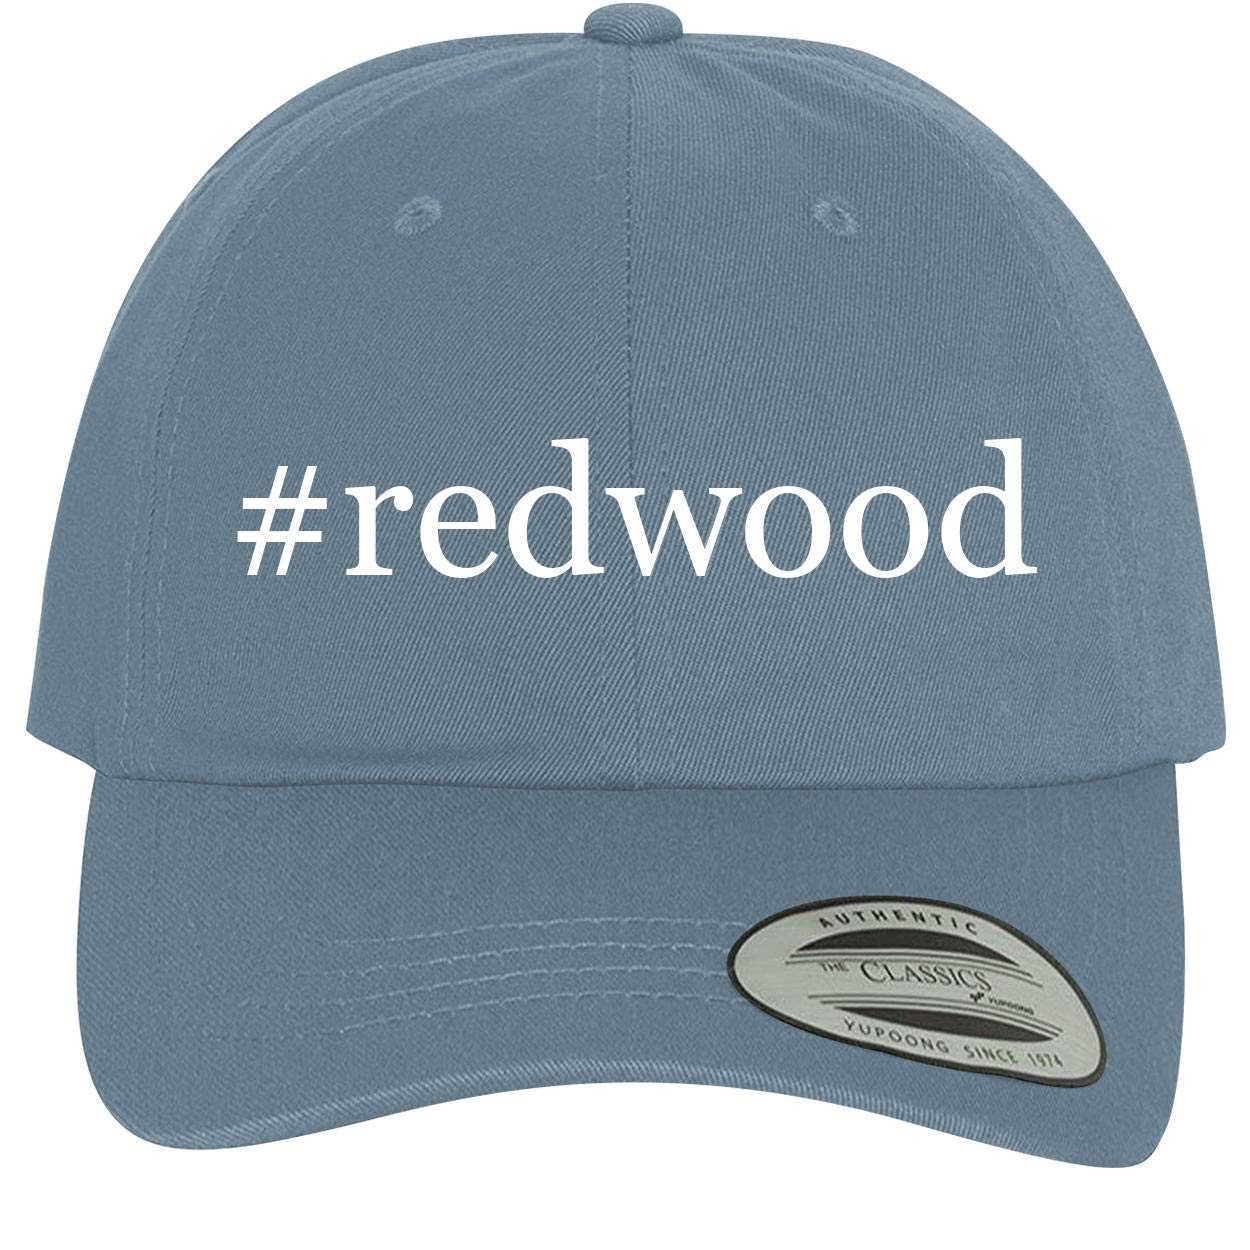 Comfortable Dad Hat Baseball Cap BH Cool Designs #Redwood